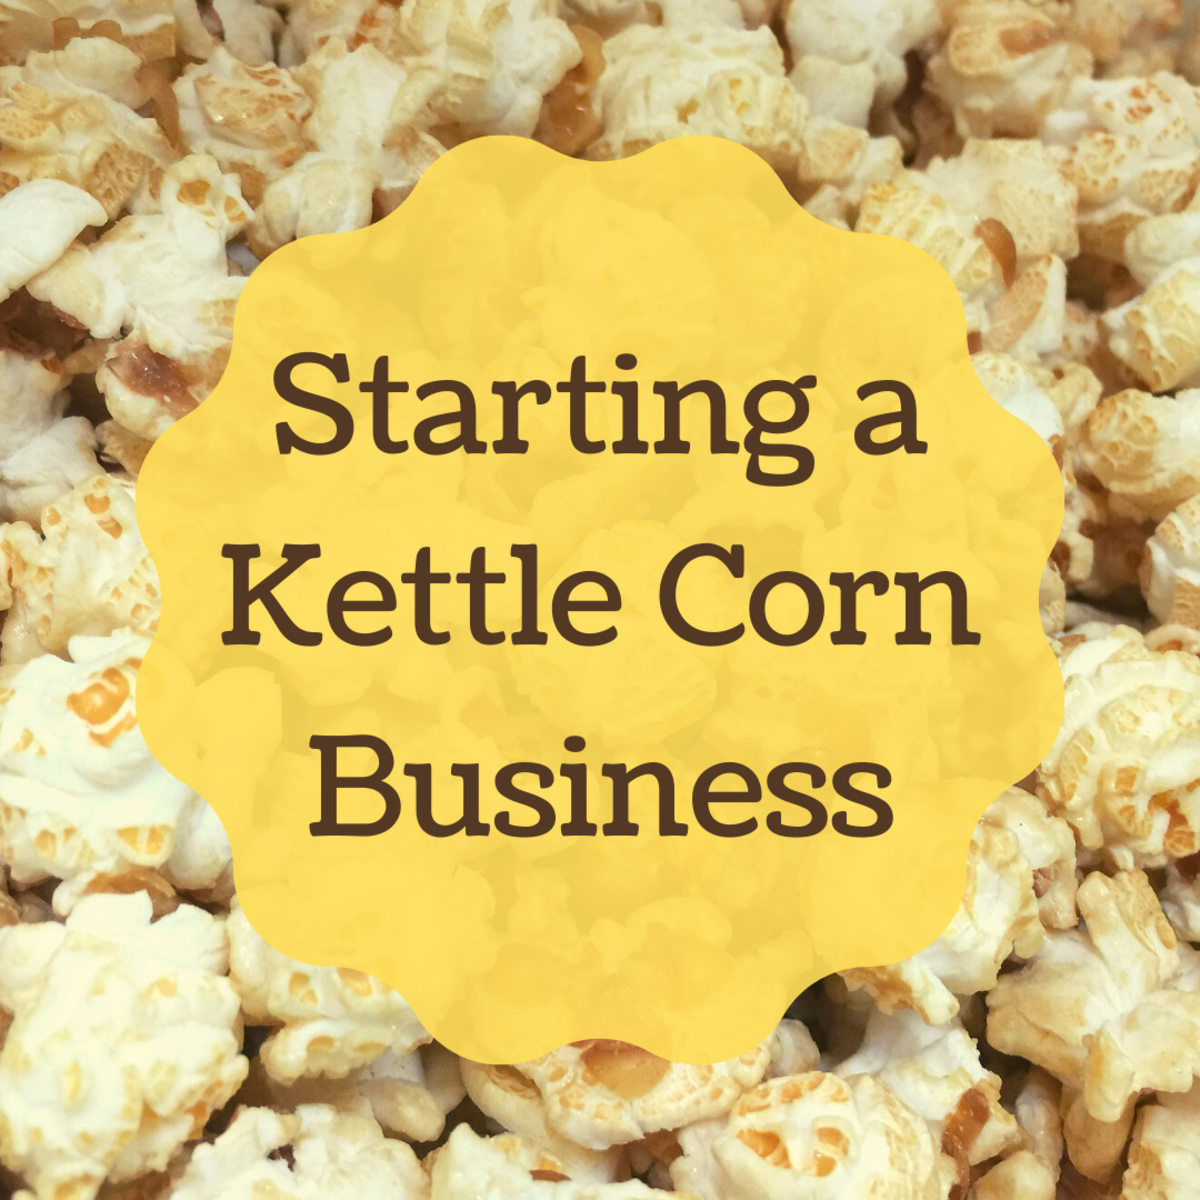 Selling kettle corn can be a profitable business venture.